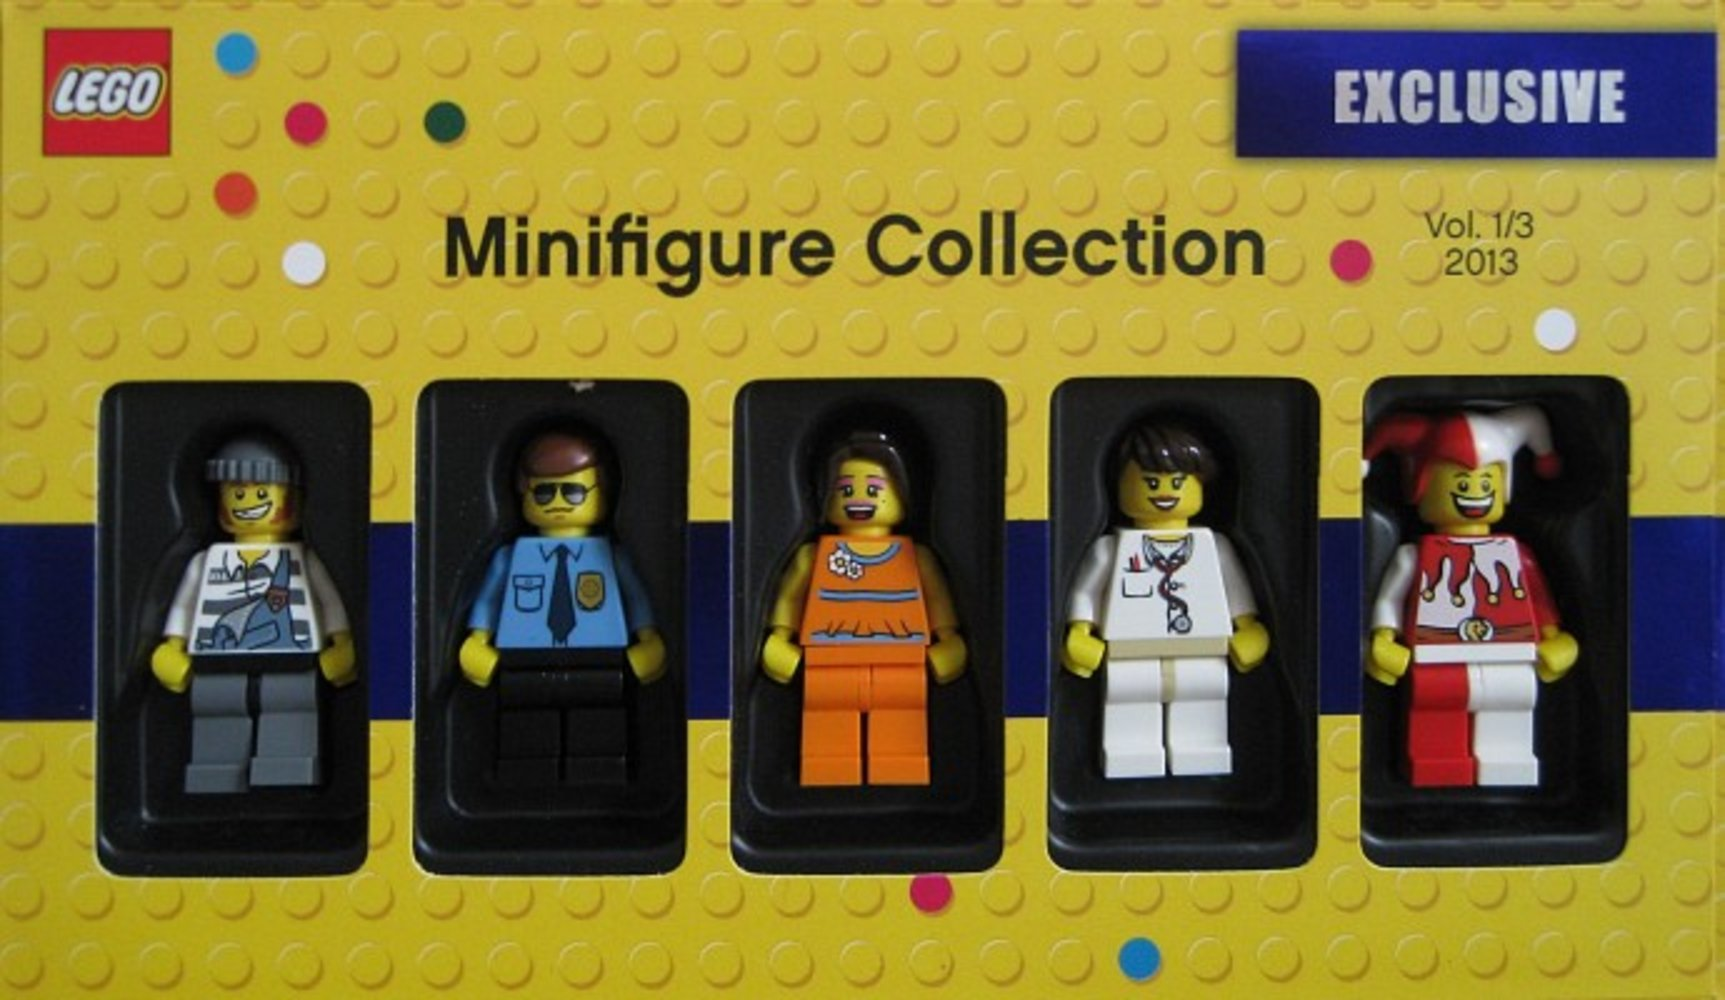 Minifigure Collection 2013 Vol. 1